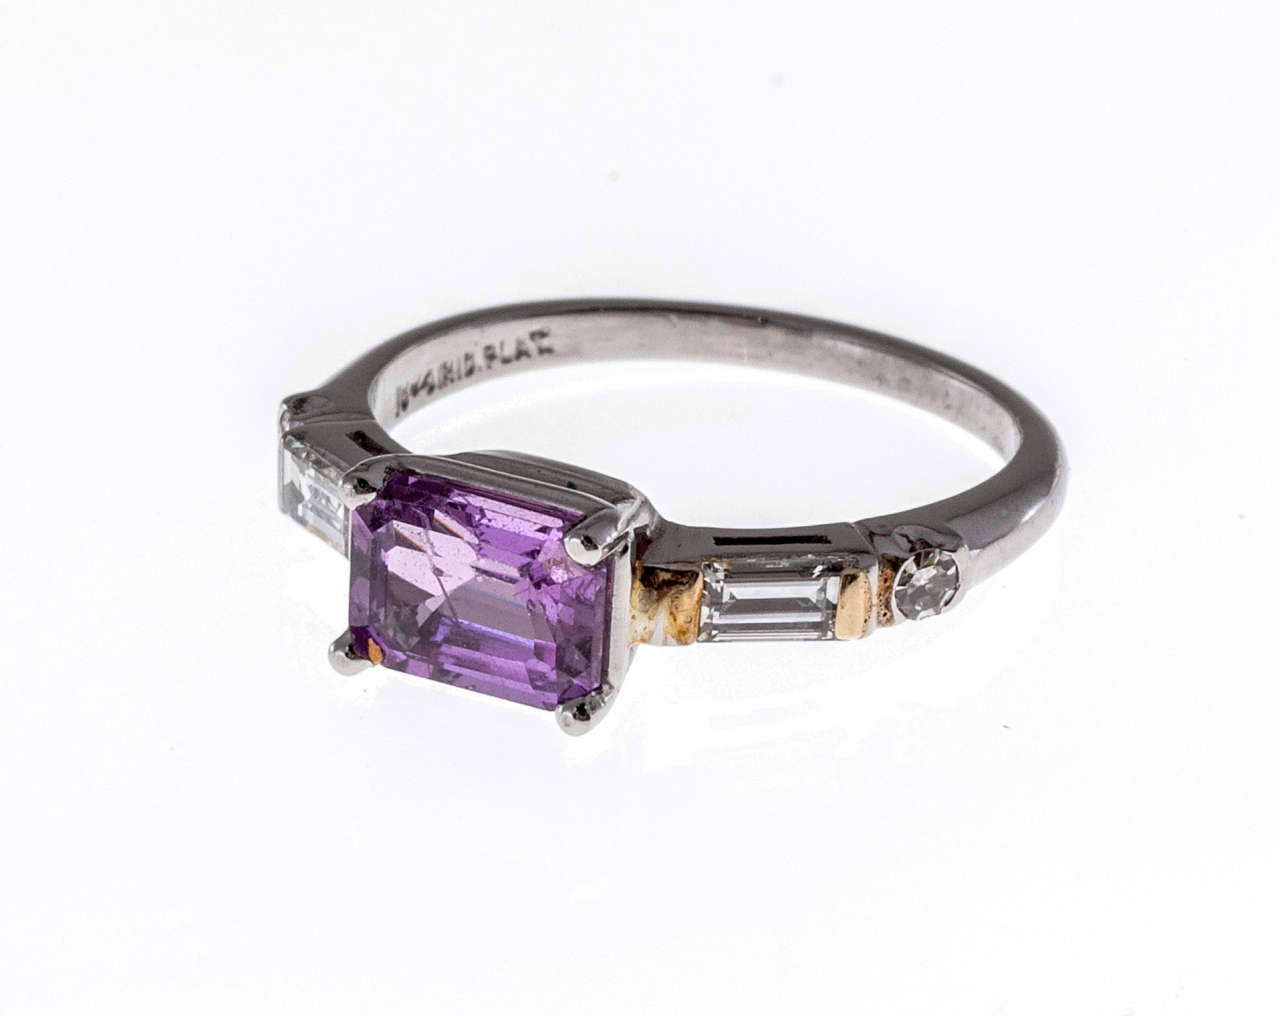 Mid-century 1940-1950 solid Platinum one of a kind ring with fine white diamonds and a super rare one of a kind natural no heat no enhancement purplish pink Sapphire. Strong color saturation. Very rare and beautiful.  1 purplish pink octagonal